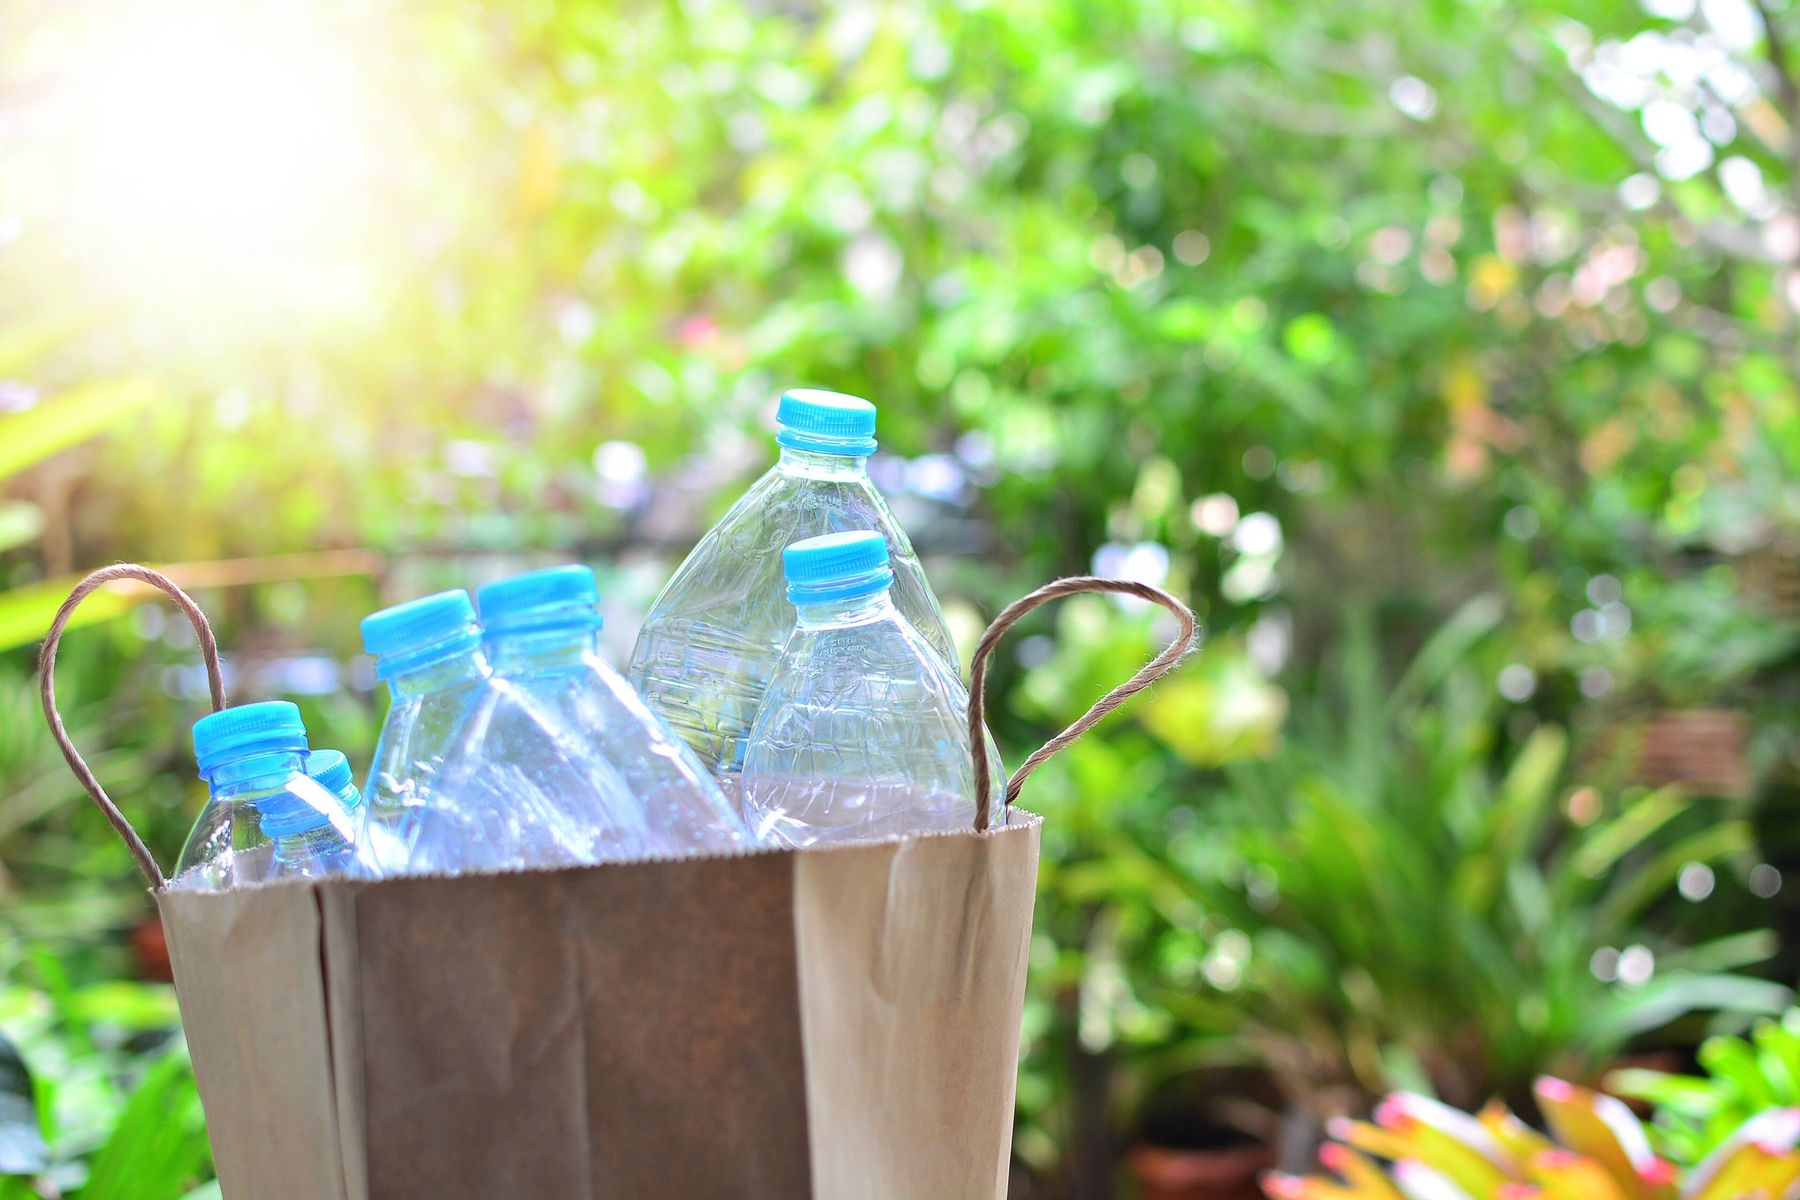 Plastic bottles inside a recyclable bag